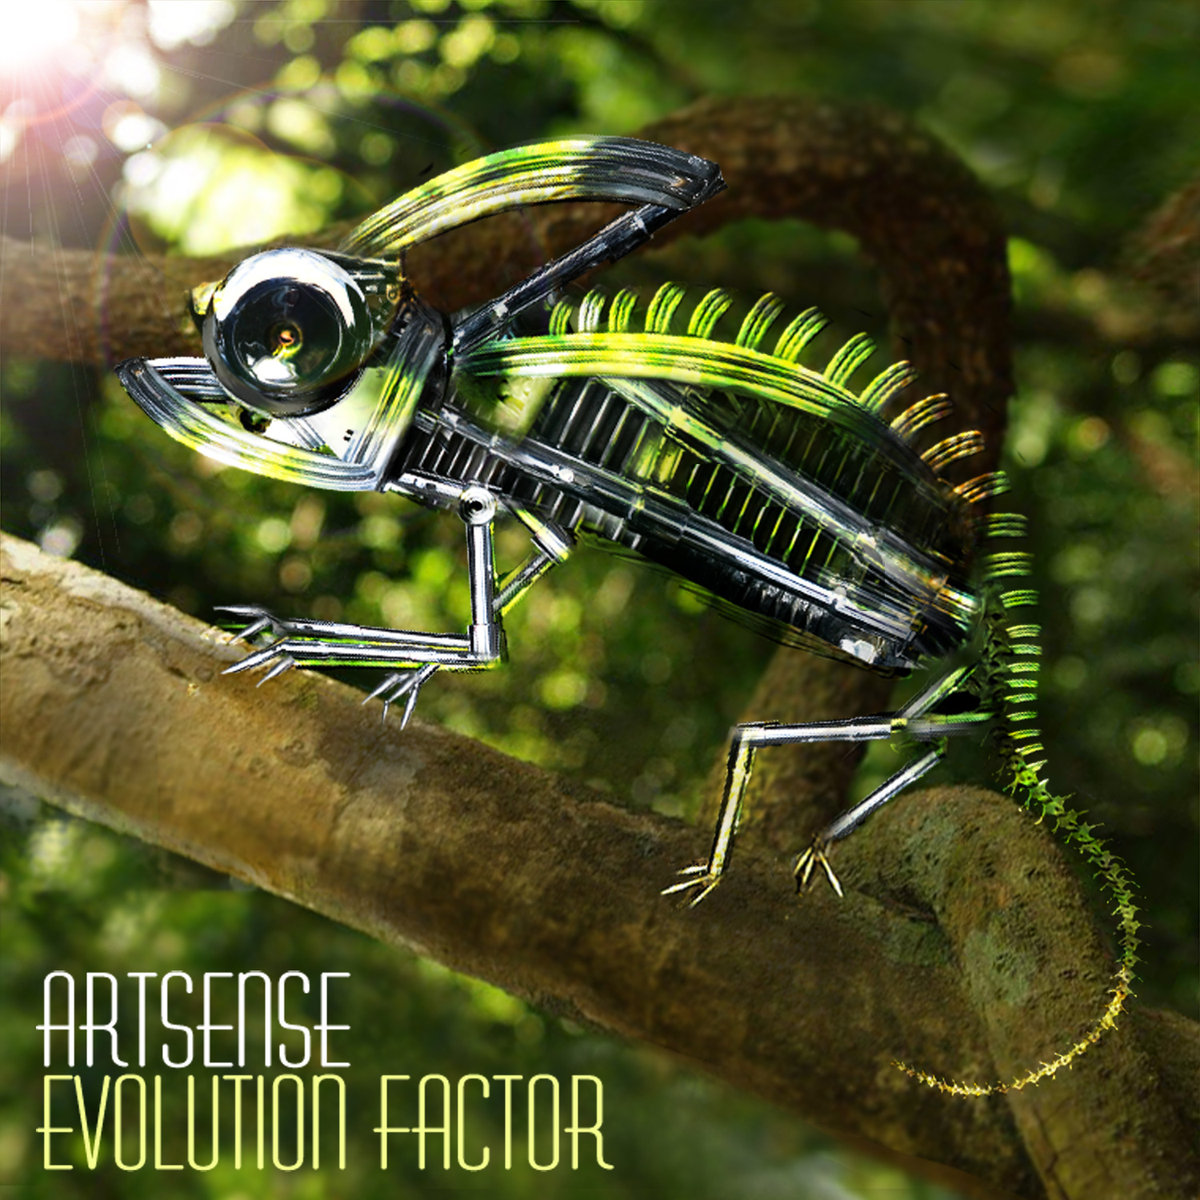 Artsense - Evolution Factor